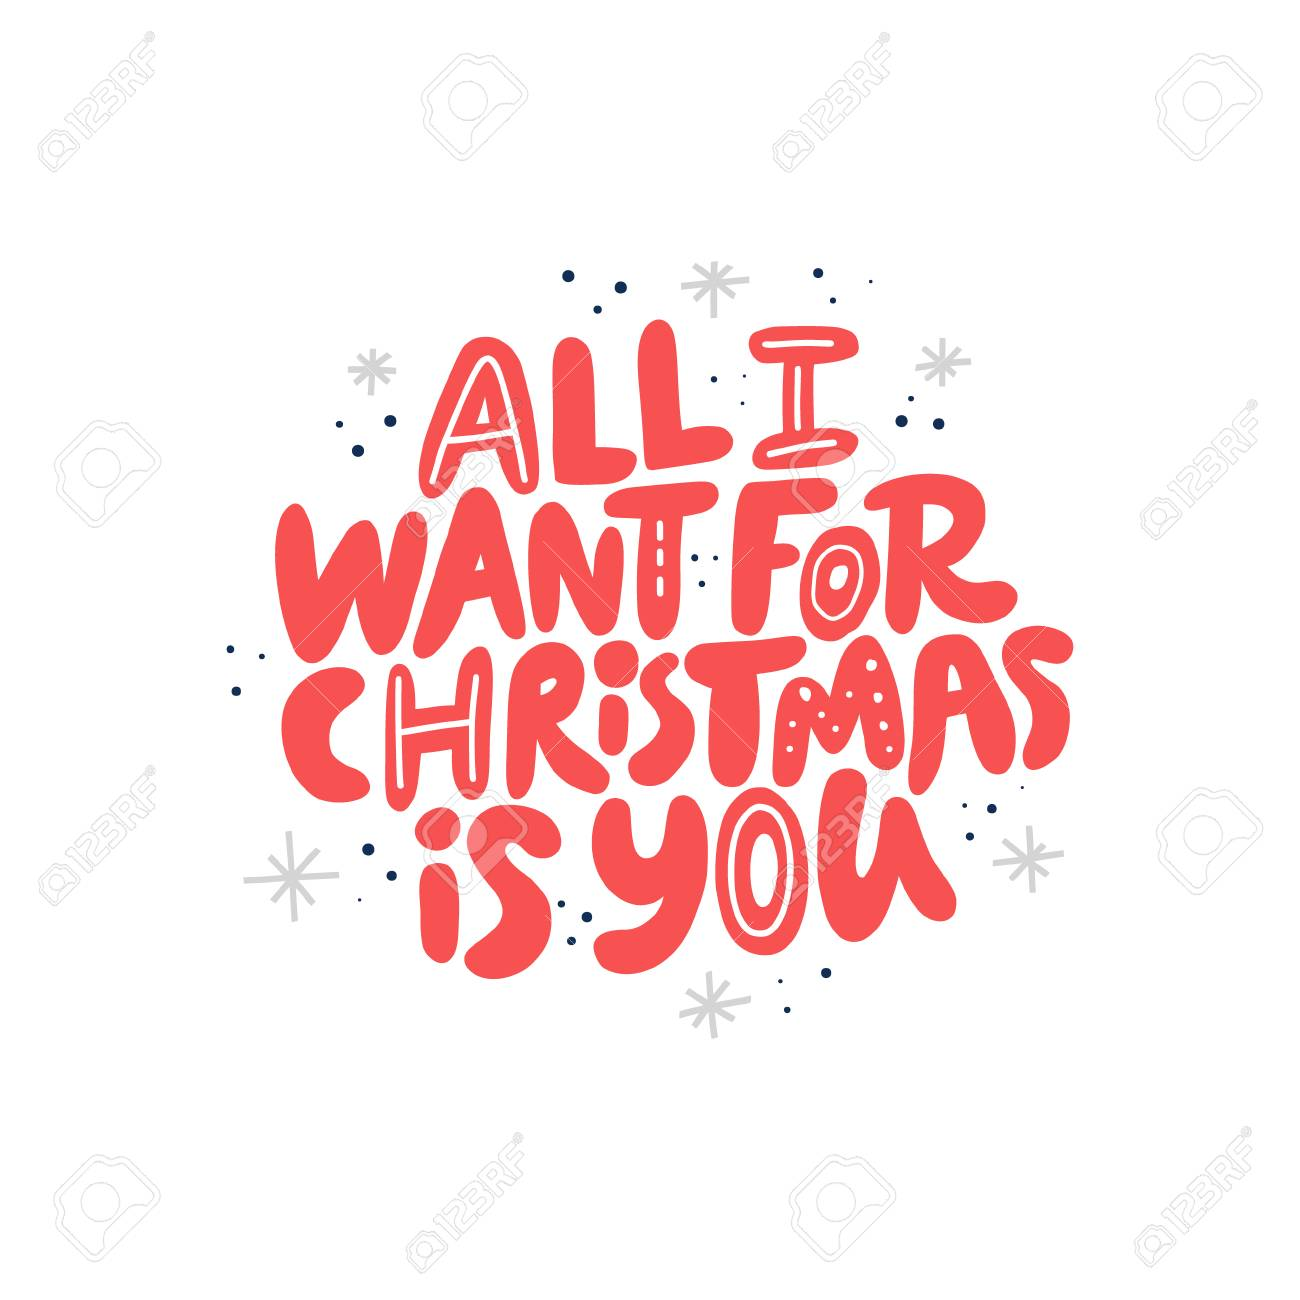 Christmas Hand Drawn Vector Red Lettering All I Want For Christmas Is You Quote Holiday Wishlist Slogan Handdrawn Wish List Clipart Xmas New Year Poster Banner Greeting Card Design Element Royalty Free